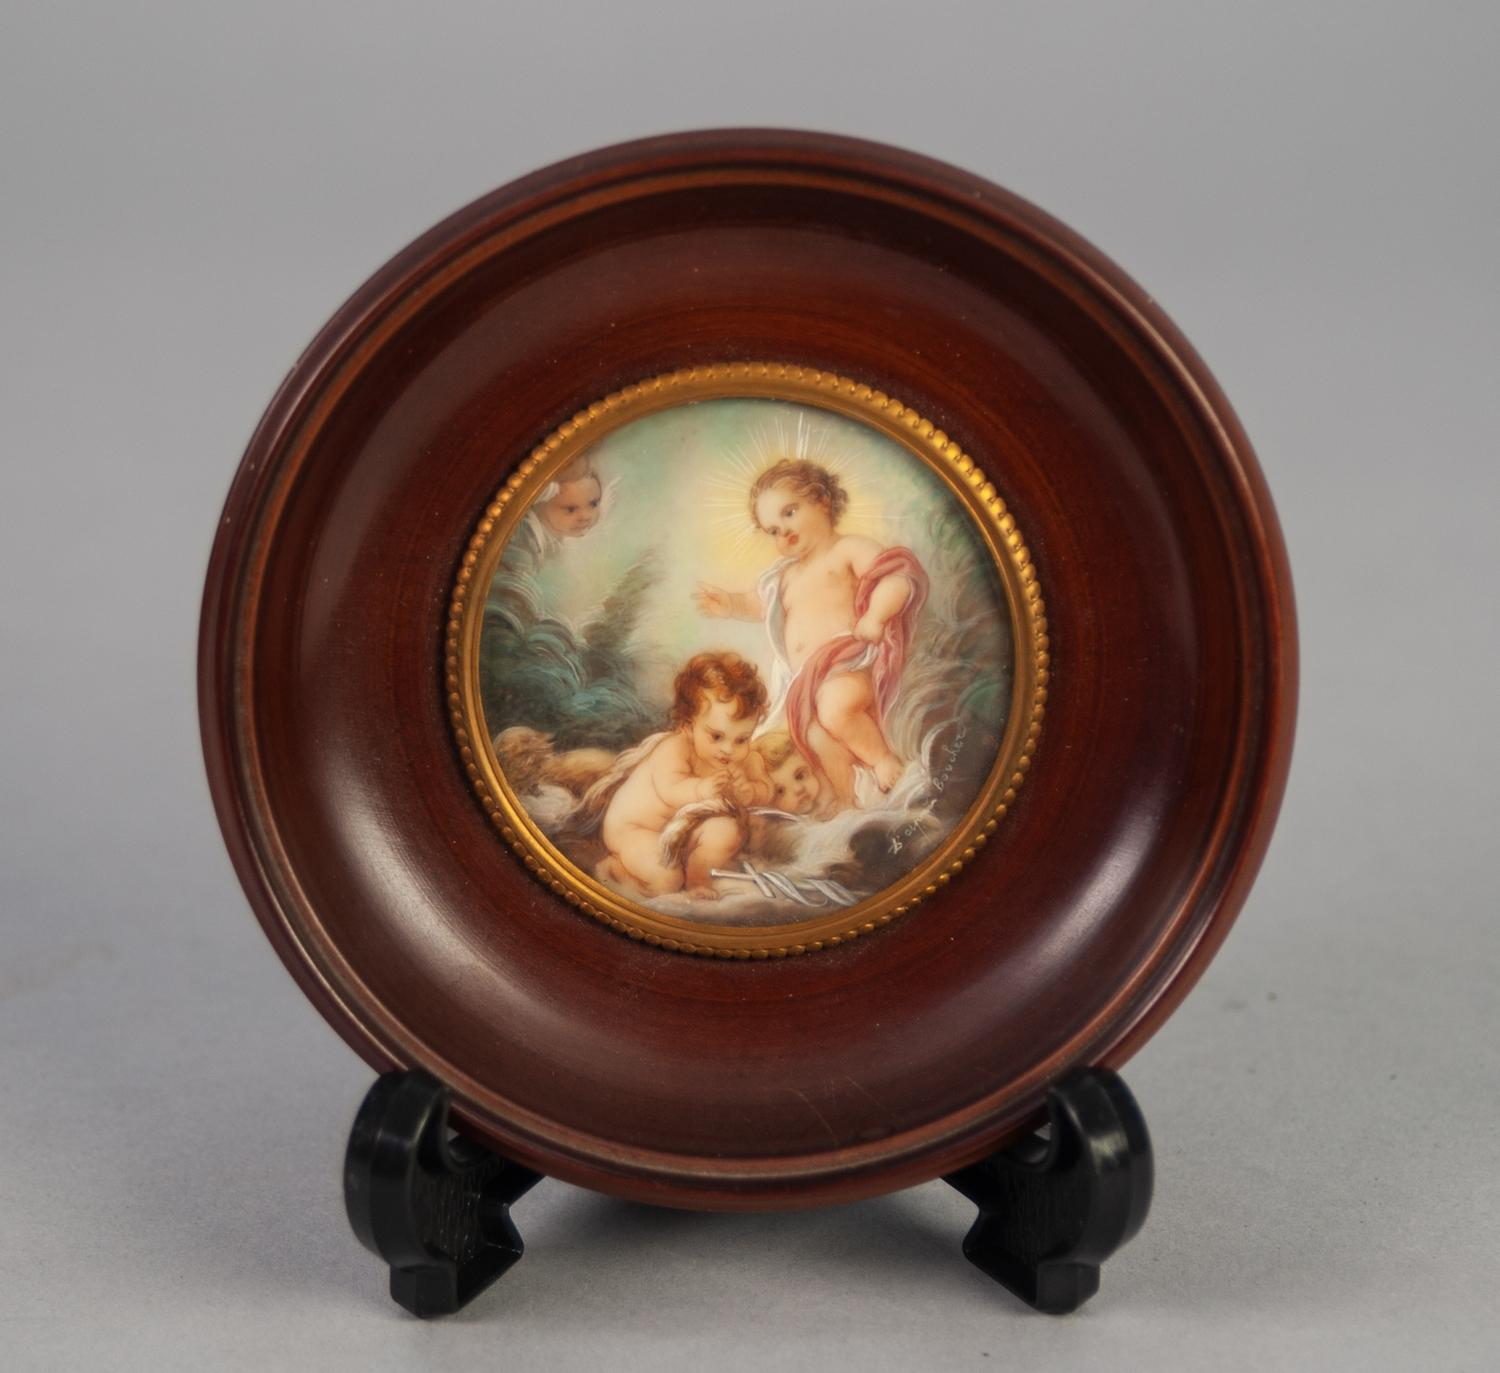 "Lot 883 - AFTER BOUCHER PORTRAIT MINIATURE 'Jesus Infant' circular 2 1/4"" diameter framed"